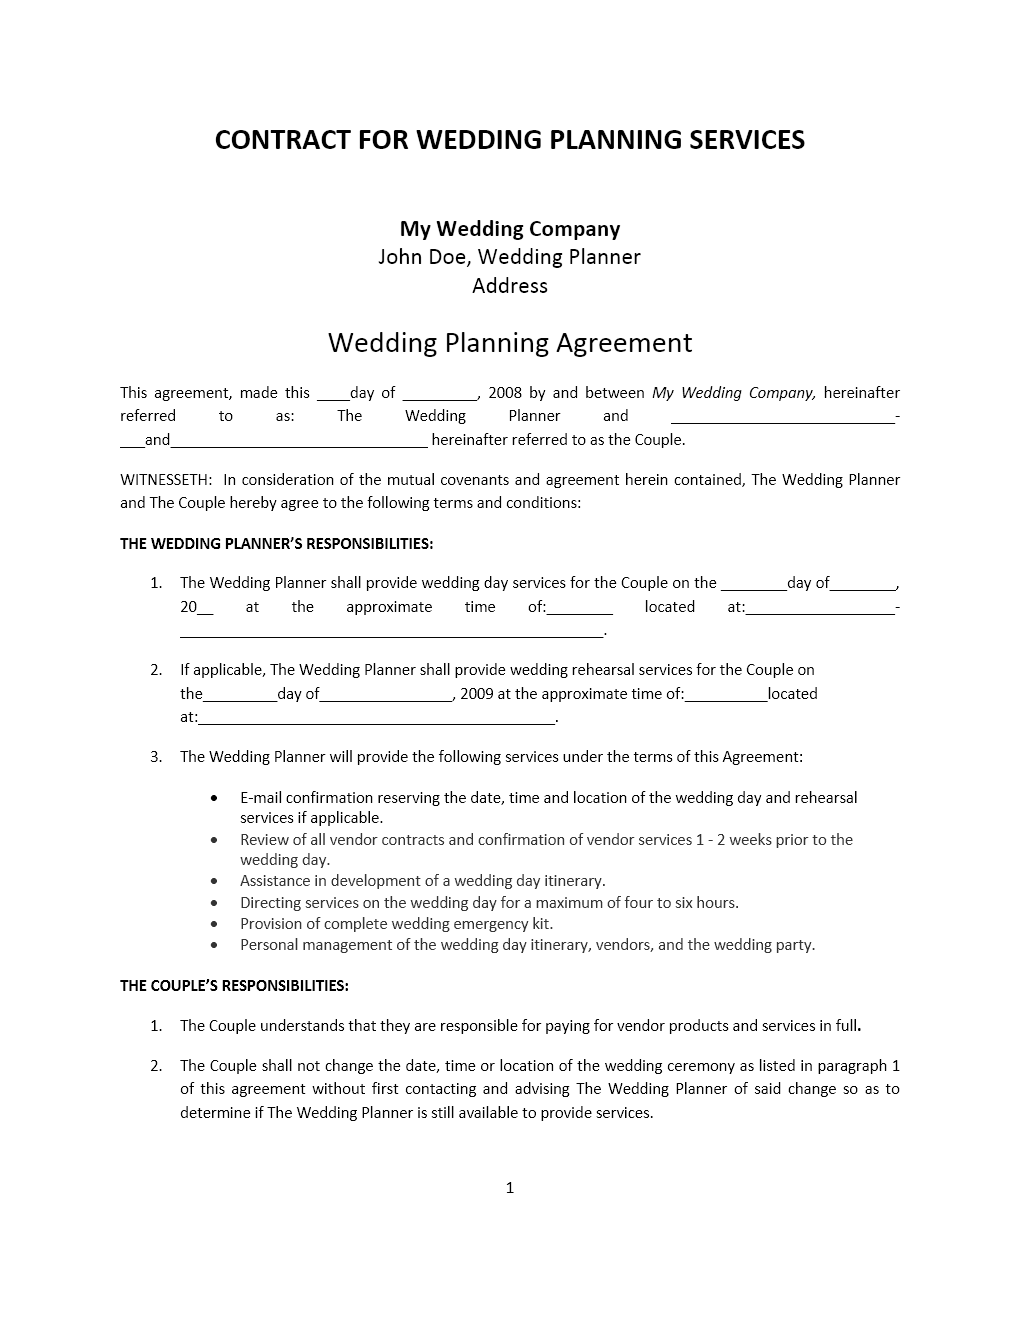 Wedding planner contract template for Event management agreement template